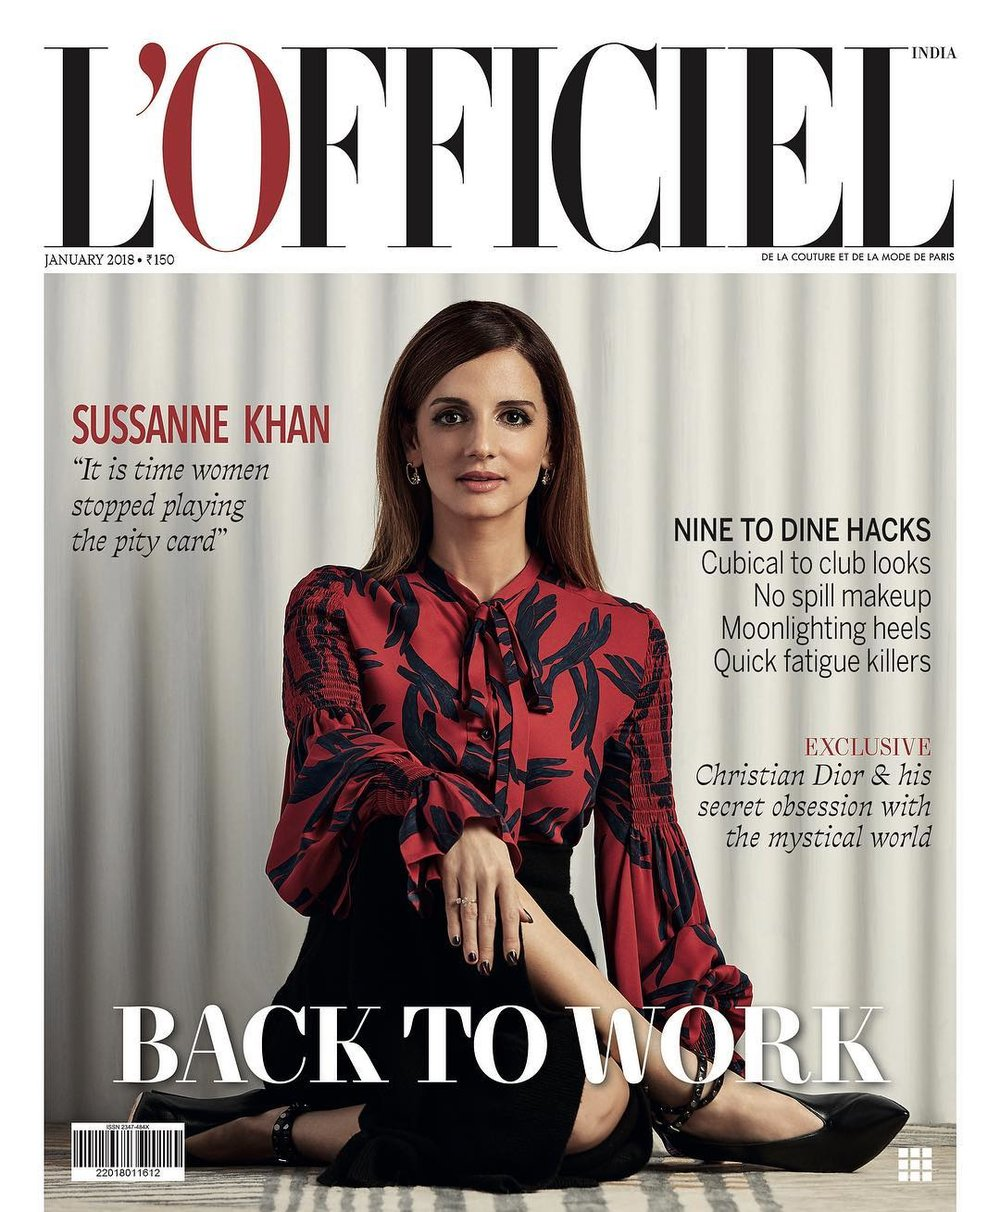 L'officiel India - Suzanne Khan.jpg